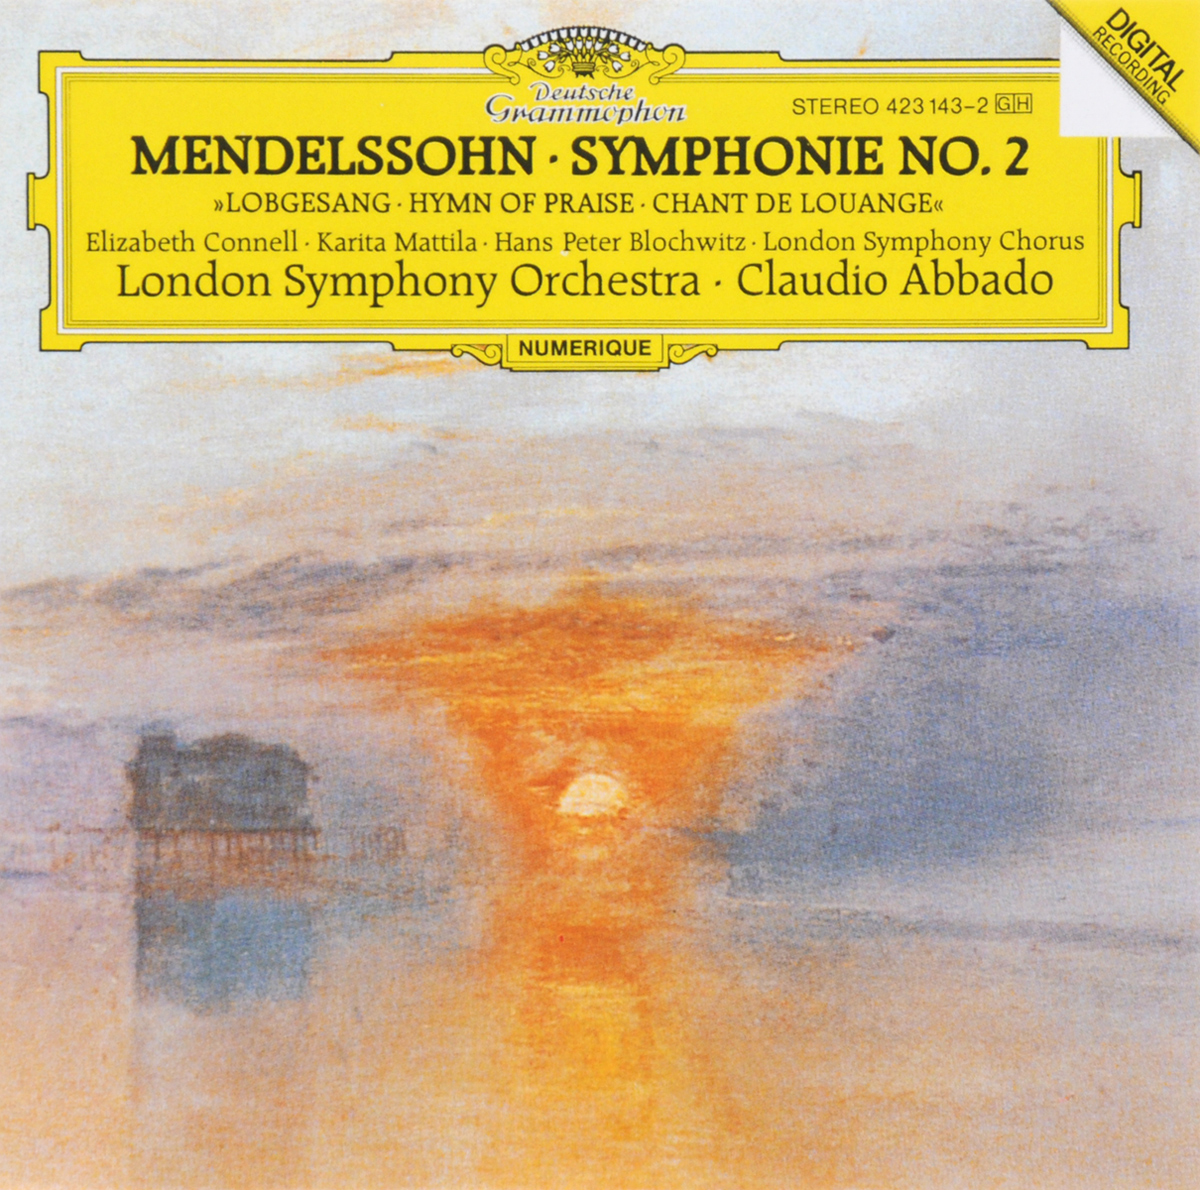 Клаудио Аббадо,The London Symphony Orchestra,London Symphony Chorus Claudio Abbado. London Symphony Orchestra. Mendelssohn. Symphonie No. 2 Lobgesang клаудио аббадо orchestra mozart claudio abbado schubert the great c major symphony 2 lp